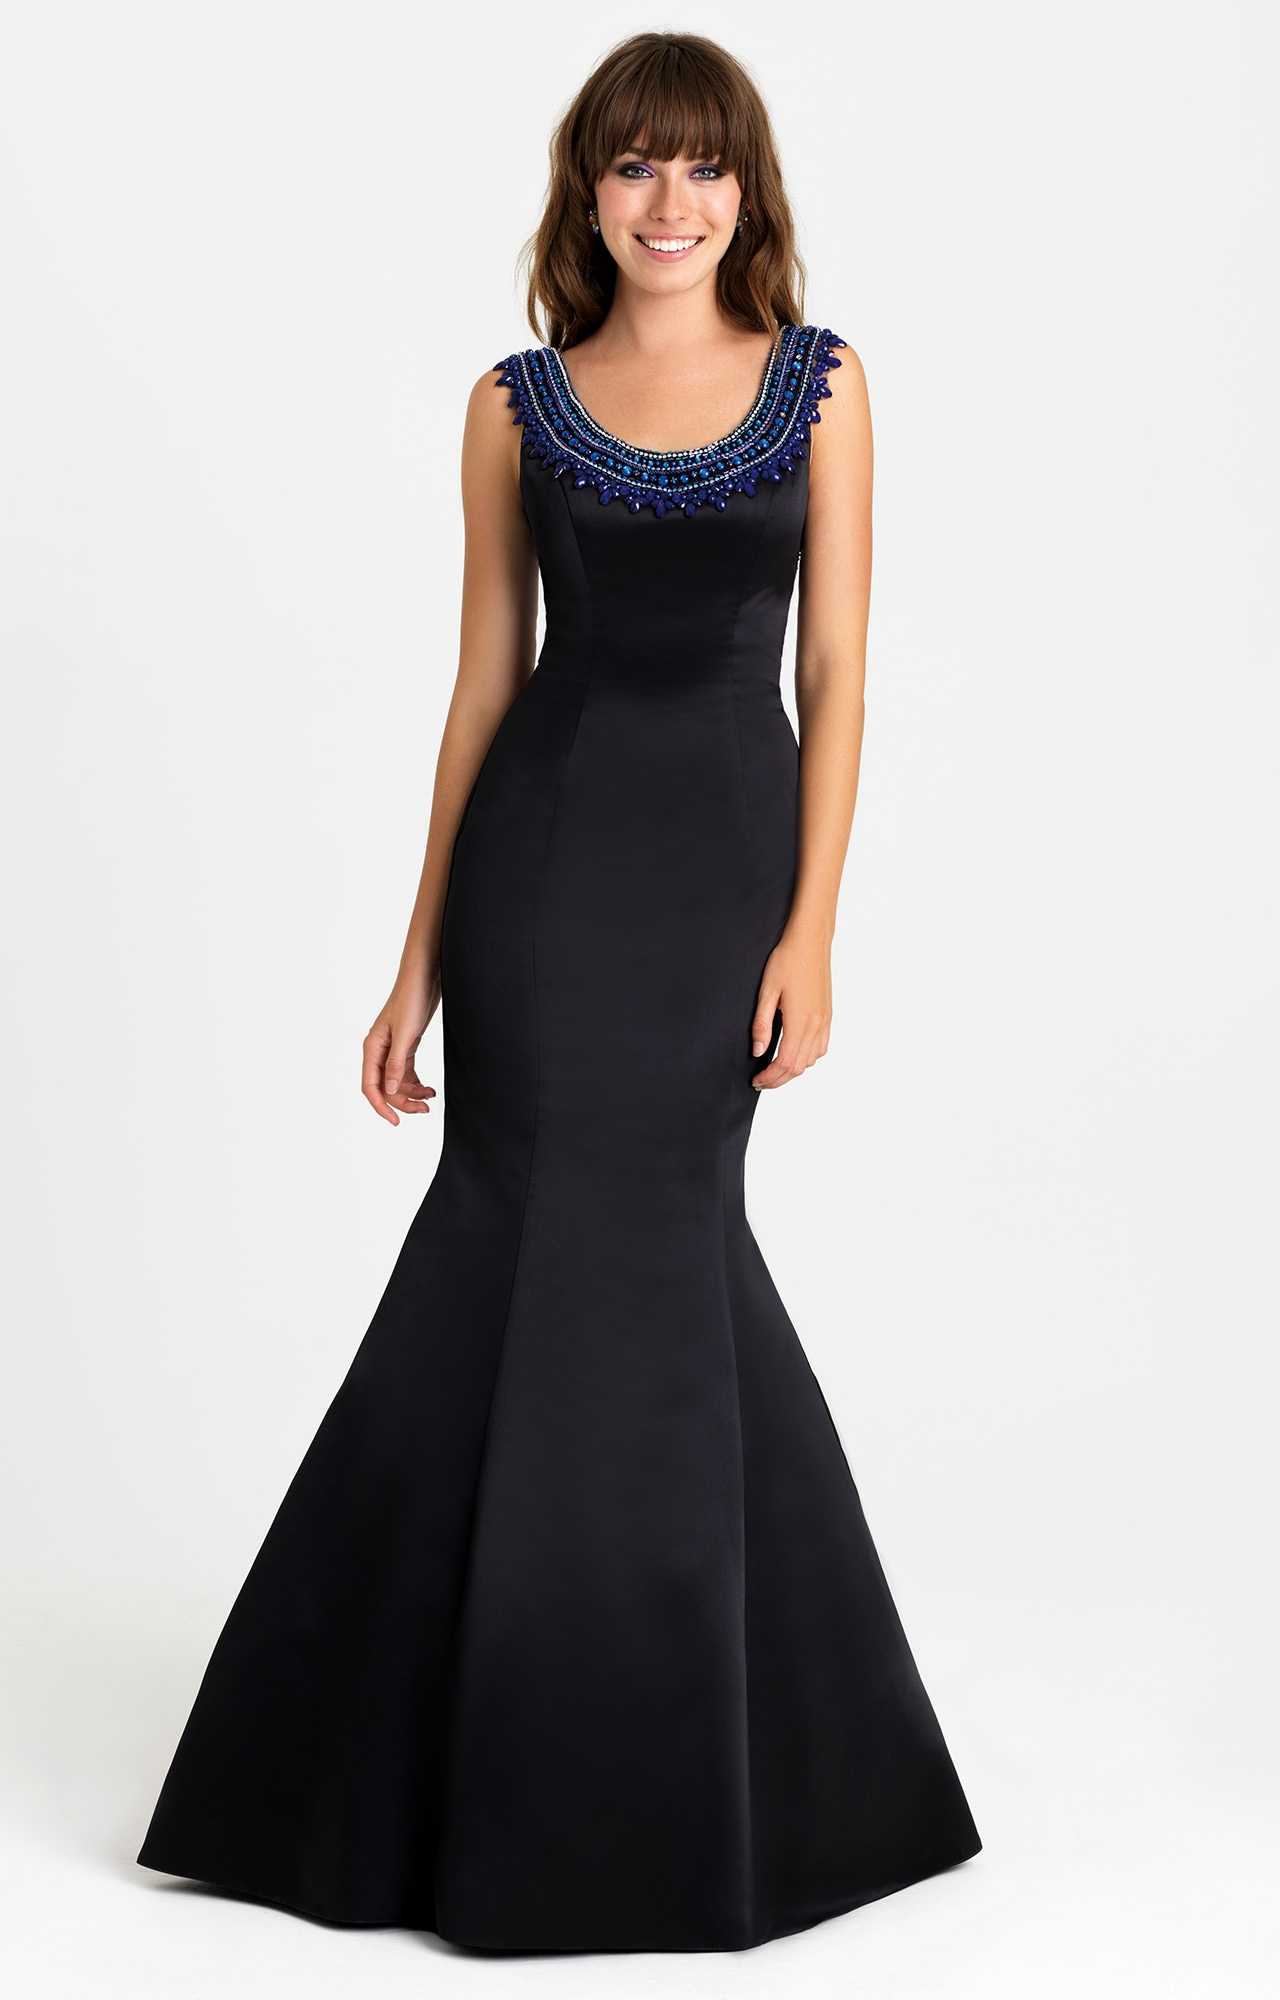 Madison James 16 317 A Night In Paris Gown Prom Dress